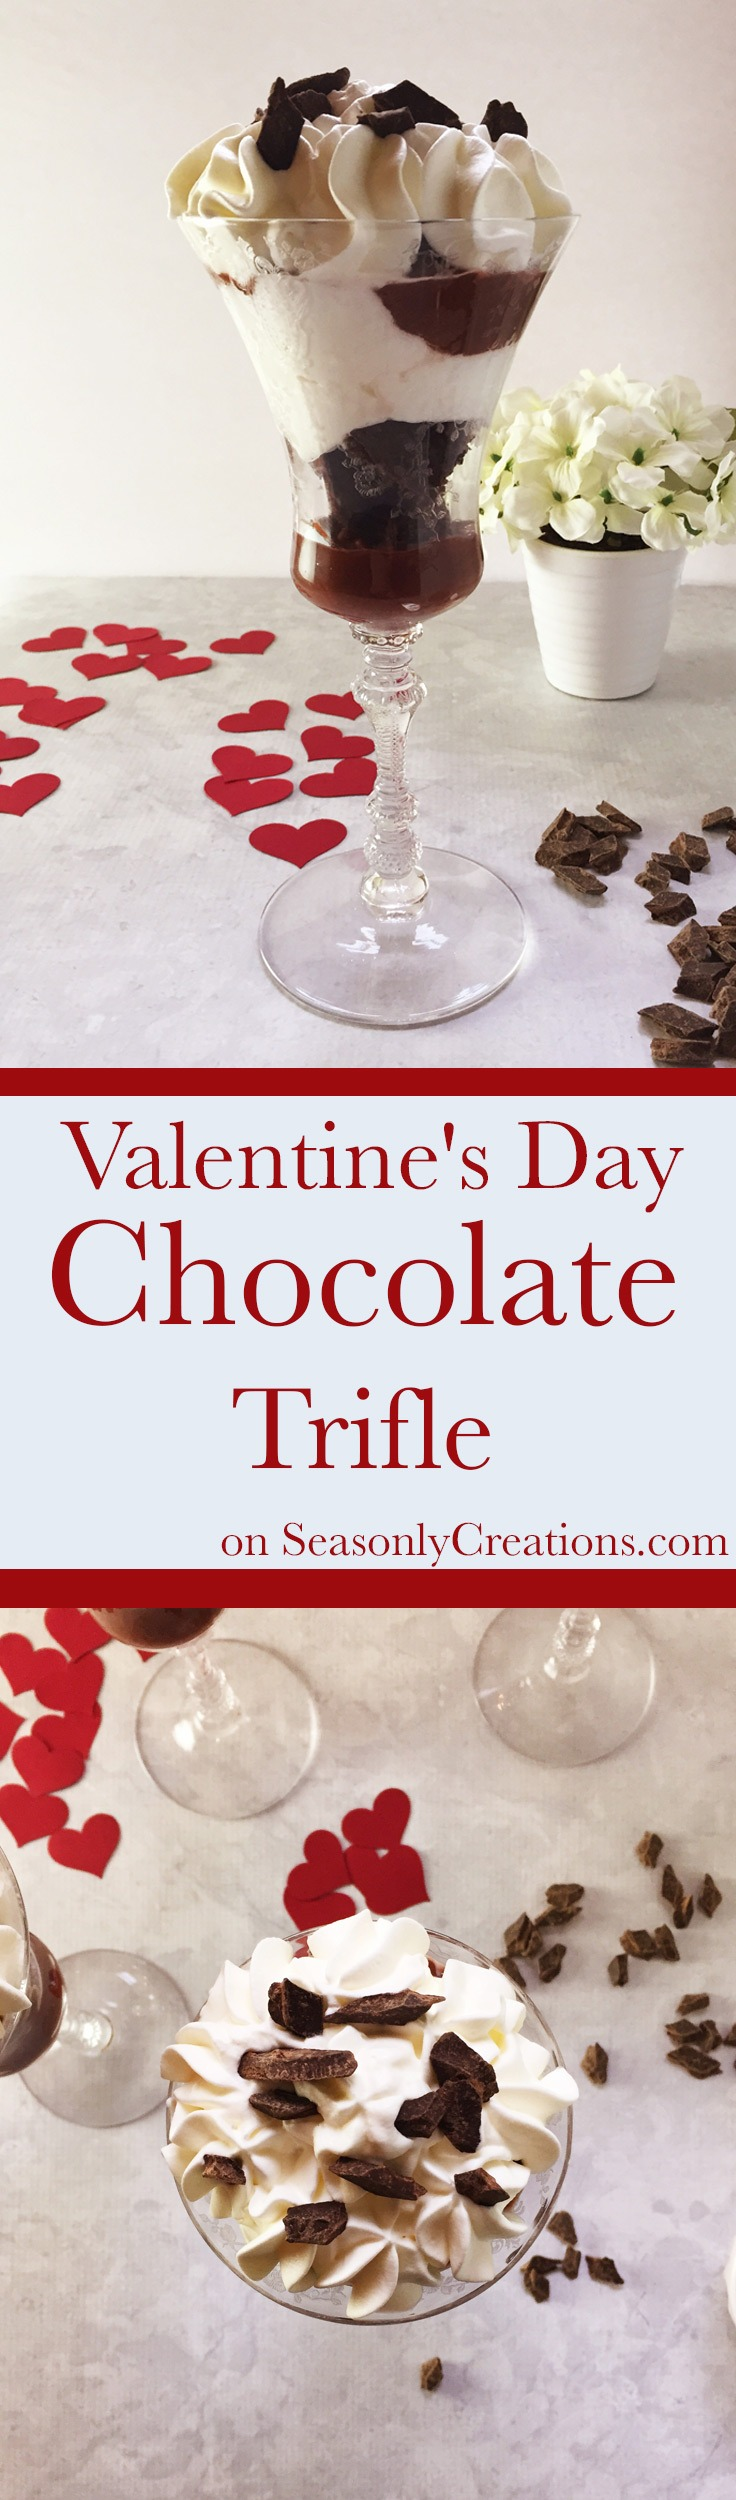 Easy Valentine's Day Chocolate Trifle Recipe for Him and Her ...